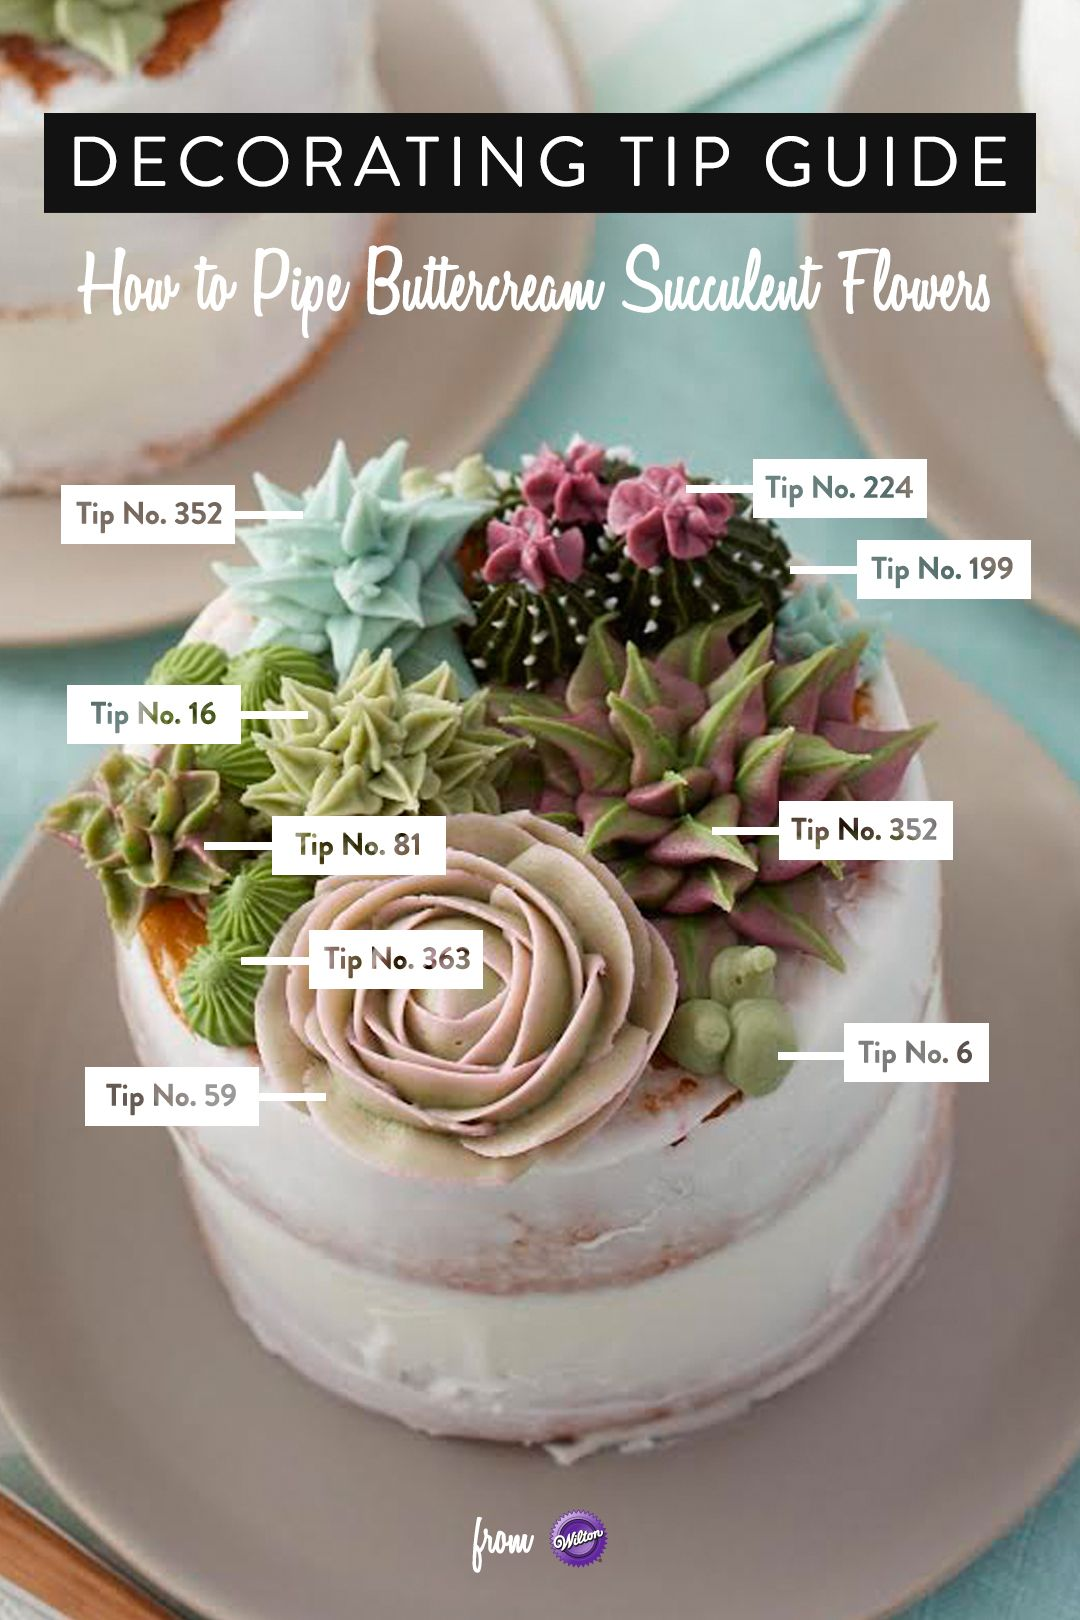 Here S A Decorating Tip Guide To Piping Buttercream